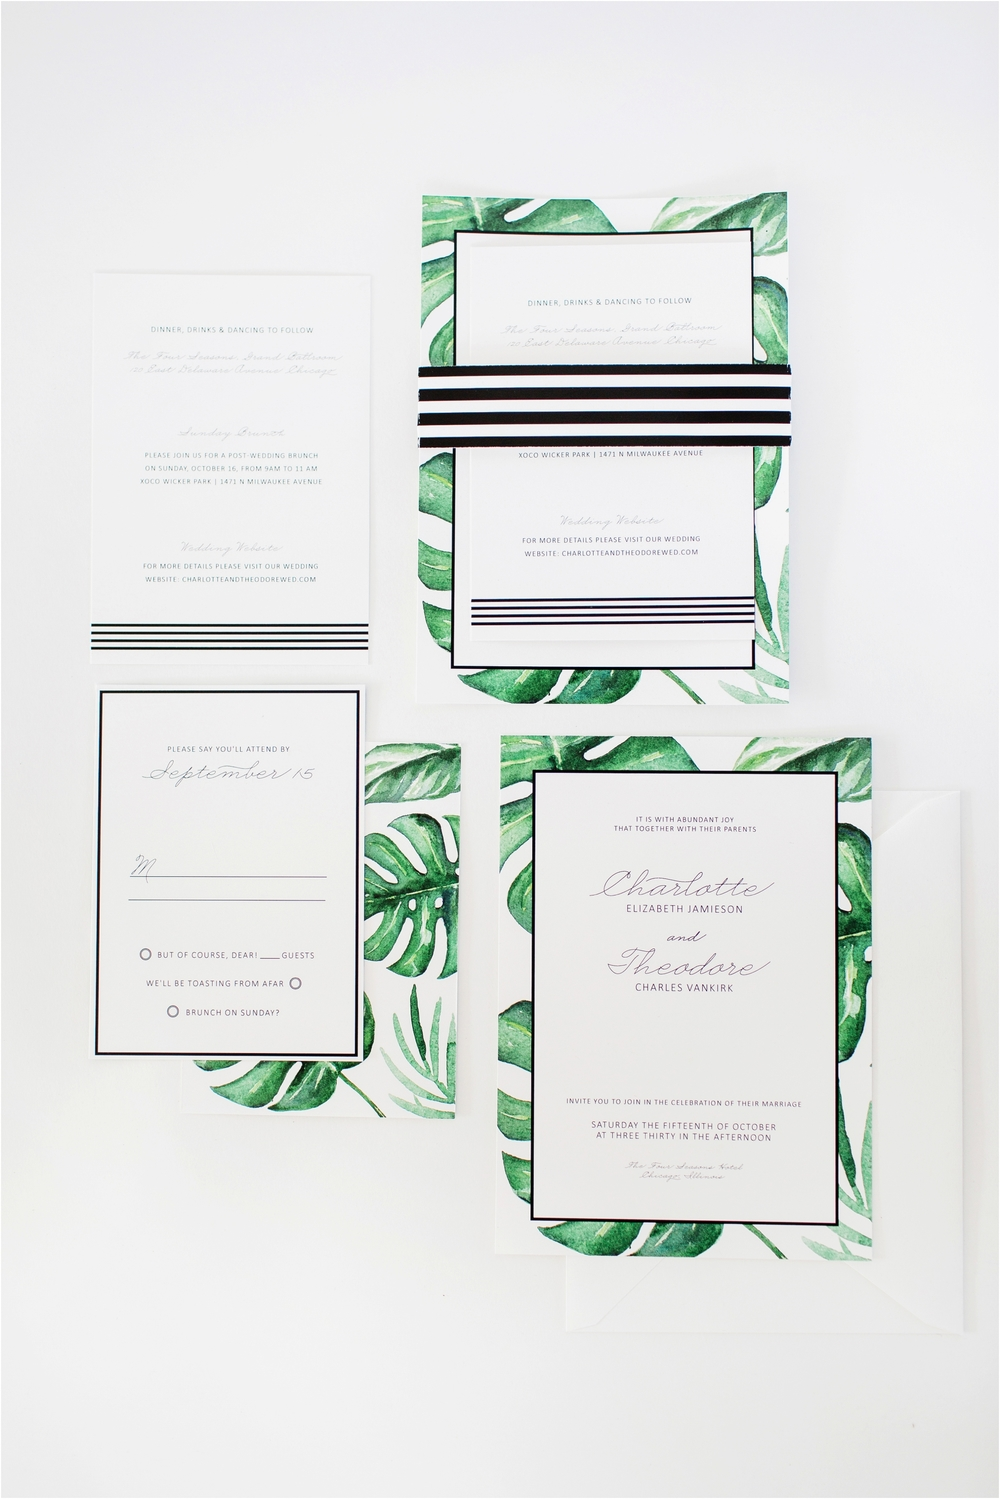 Grand Rapids, MI Summer Wedding Invitations